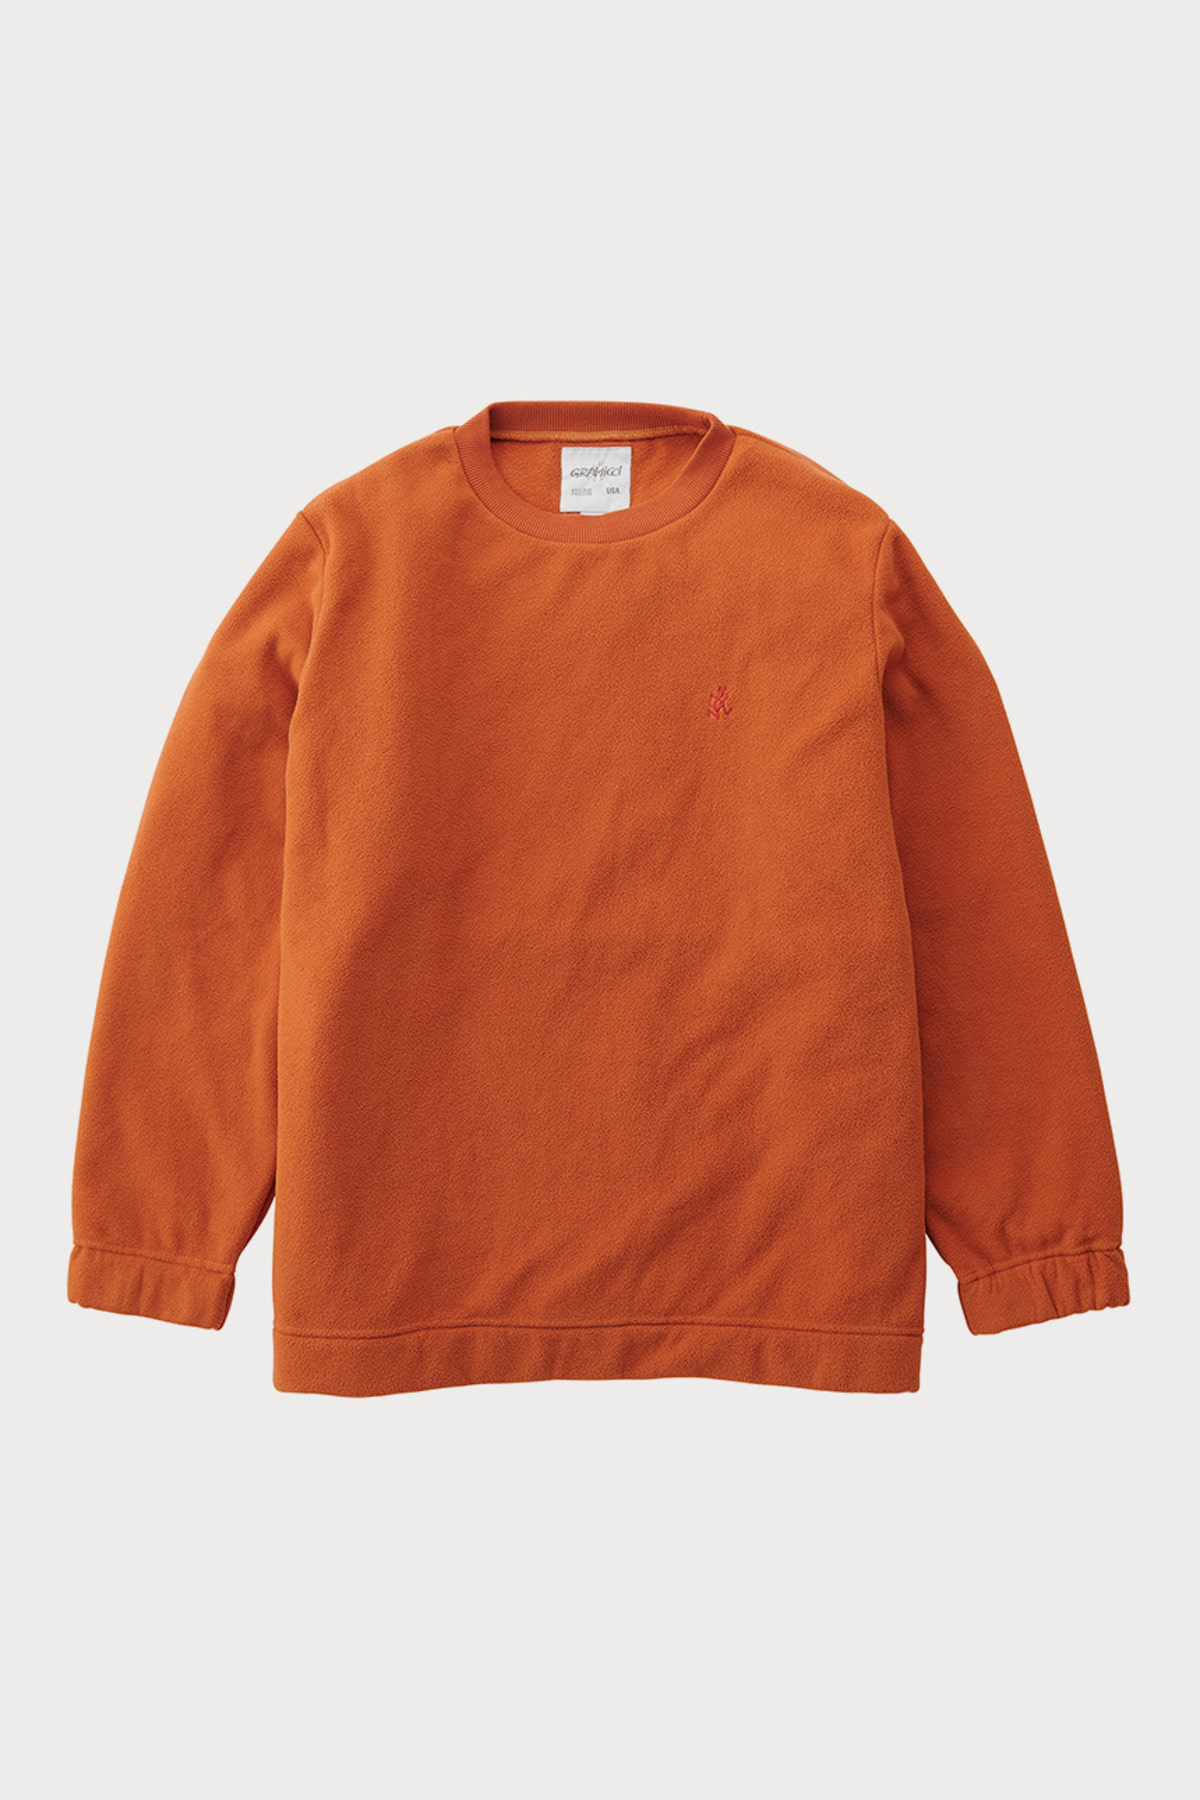 FLEECE CREW NECK ORANGE